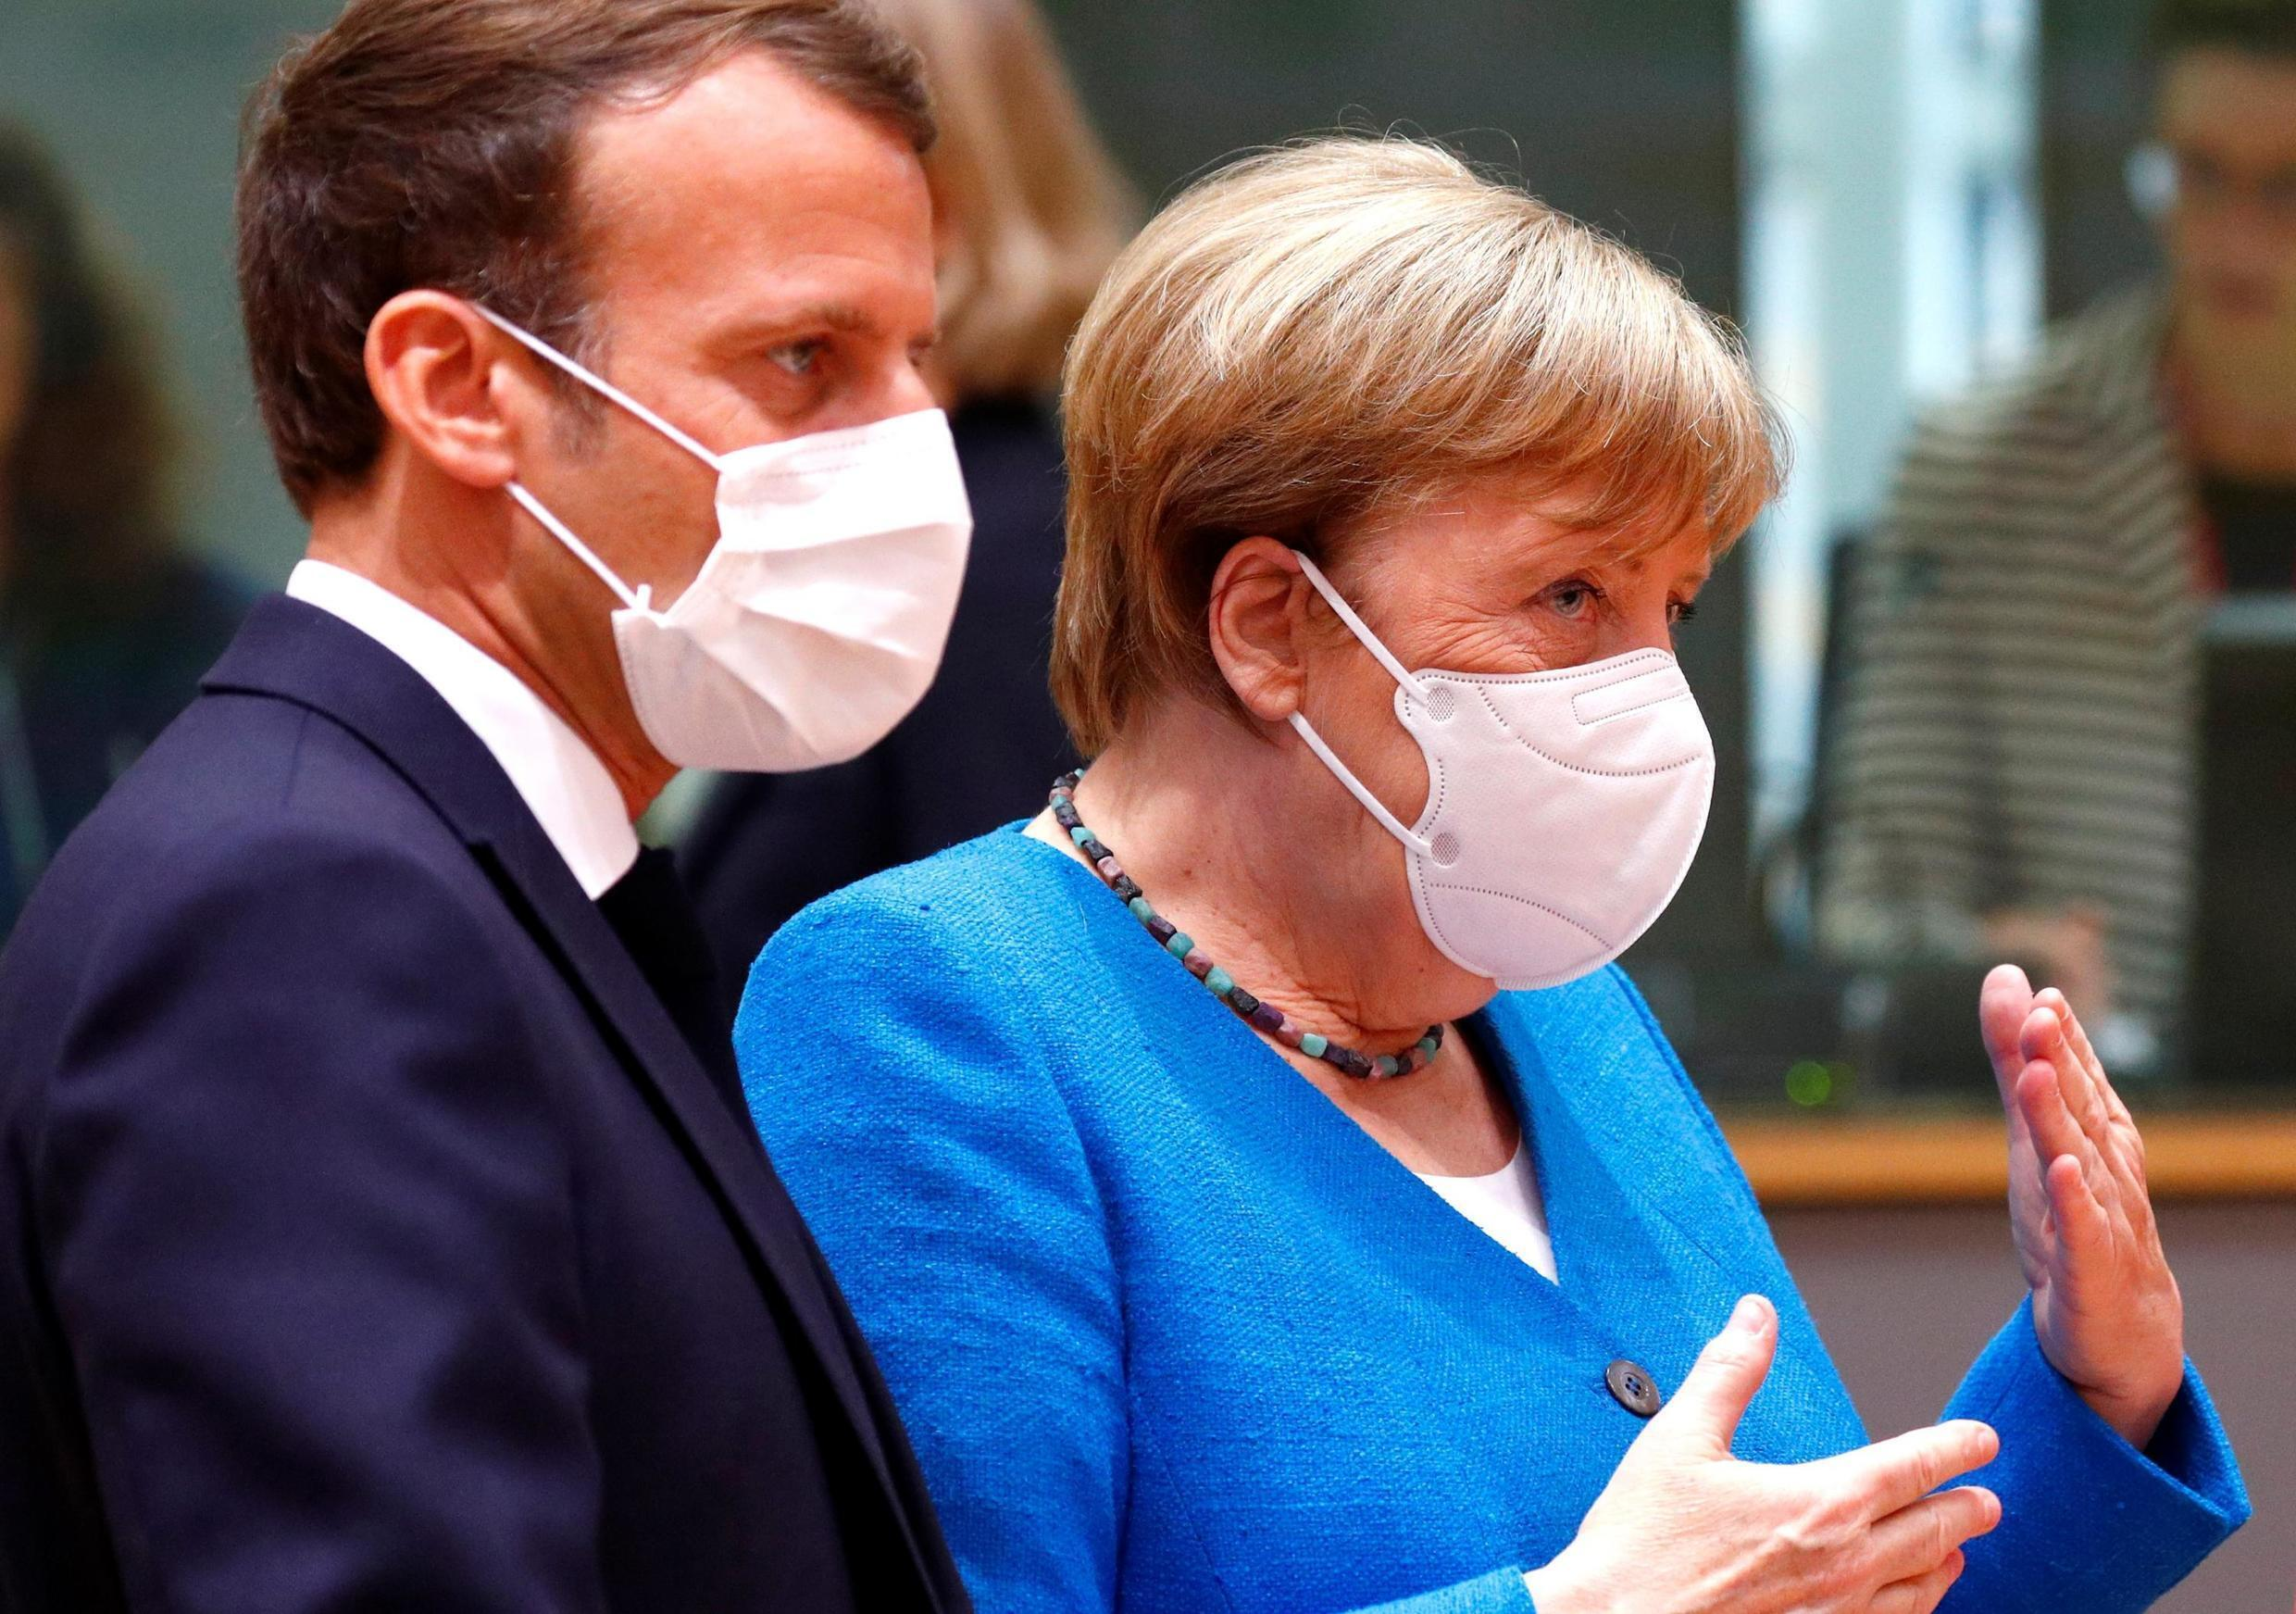 Angela Merkel and Emmanuel Macron are trying to save an EU-wide recovery deal, 18 July 2020 in Brussels.